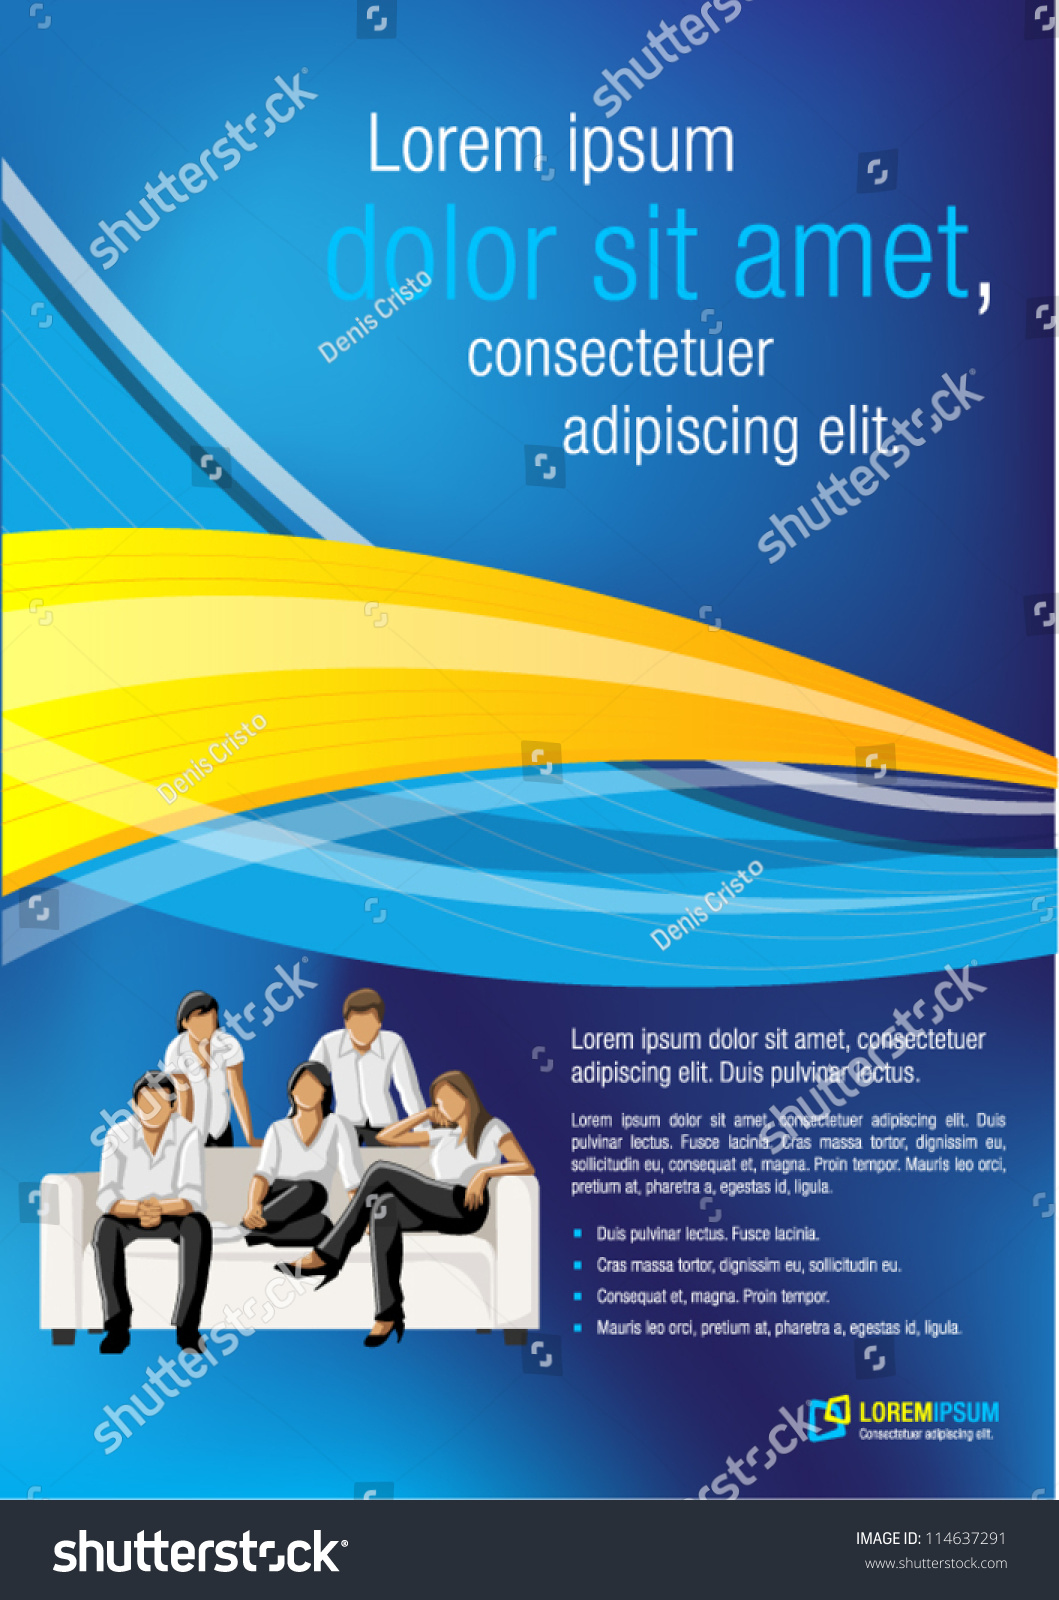 blue and yellow template for advertising brochure business blue and yellow template for advertising brochure business people stock vector illustration 114637291 shutterstock